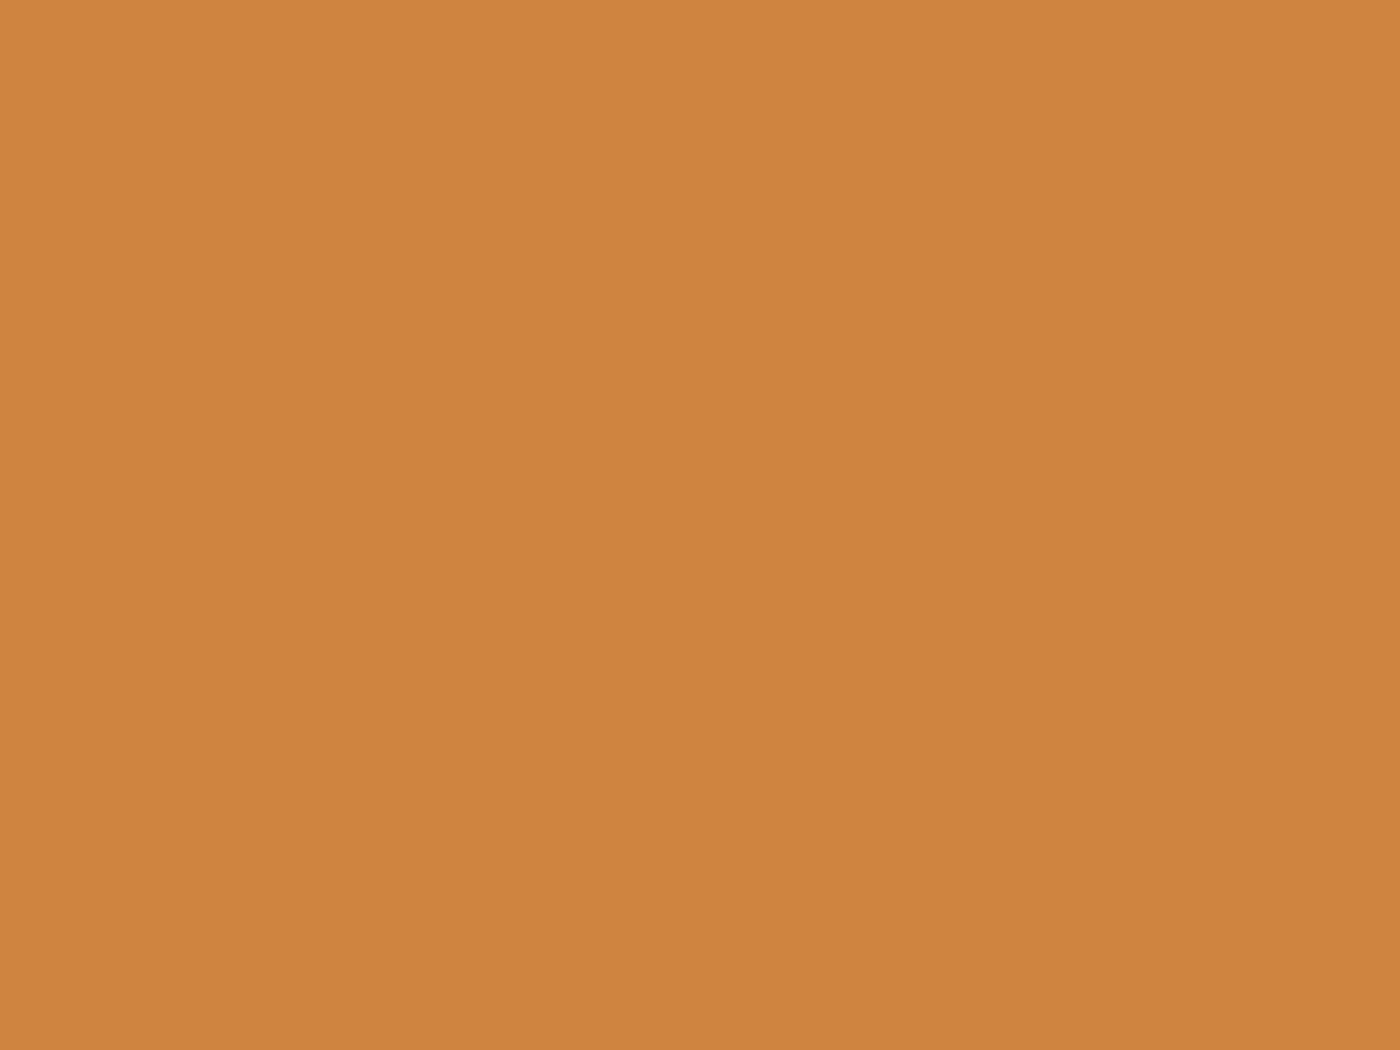 1400x1050 Peru Solid Color Background